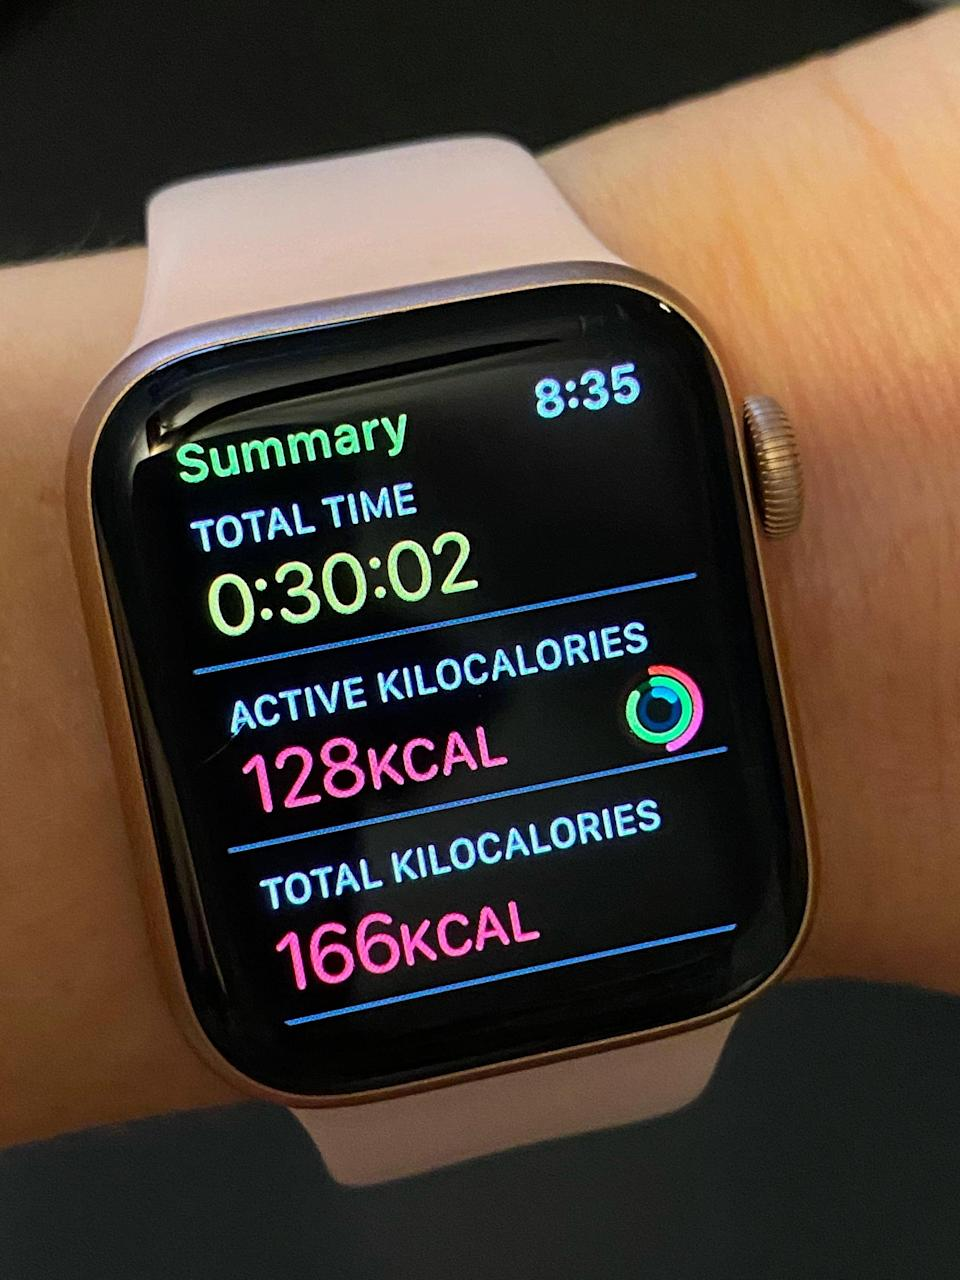 """<p>Here's what the Apple Watch screen looked like when I ended the dance workout. It tracks workout time, active calories, and total calories. <a href=""""https://www.popsugar.com/fitness/Active-Calories-vs-Total-Calories-45268672"""" class=""""link rapid-noclick-resp"""" rel=""""nofollow noopener"""" target=""""_blank"""" data-ylk=""""slk:Active calories"""">Active calories</a> are those you burn while actually exercising (in this case, dancing). Total calories include both active calories and resting calories, which are those your body burns when you perform basic functions like breathing and as you go throughout your day.</p>"""